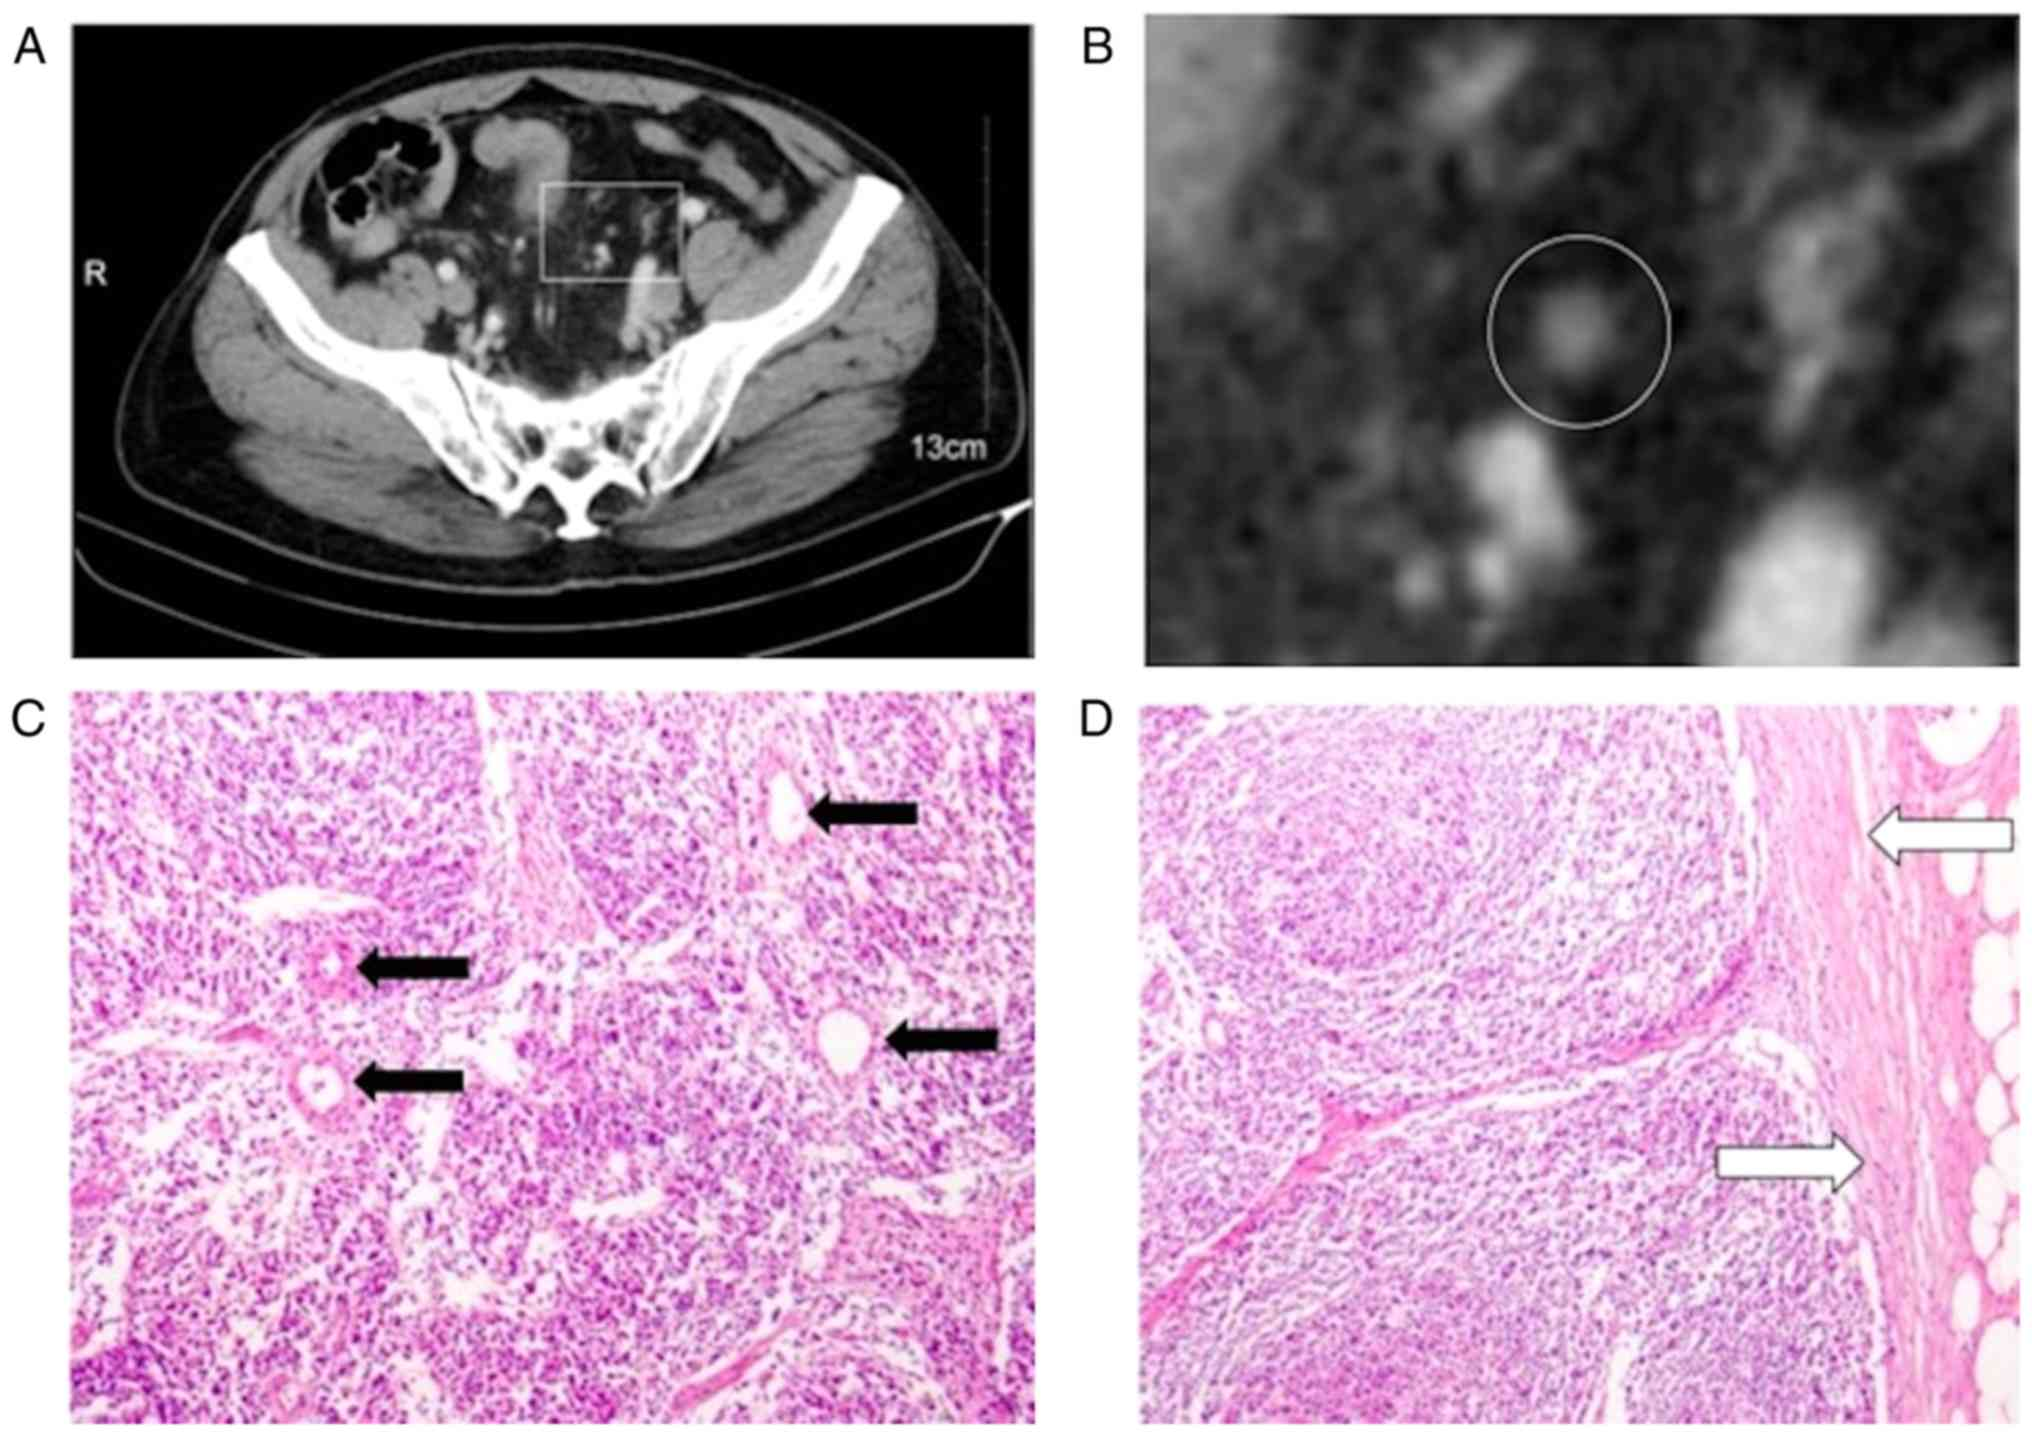 Contrast Enhanced Ct Imaging For The Assessment Of Lymph Node Status In Patients With Colorectal Cancer